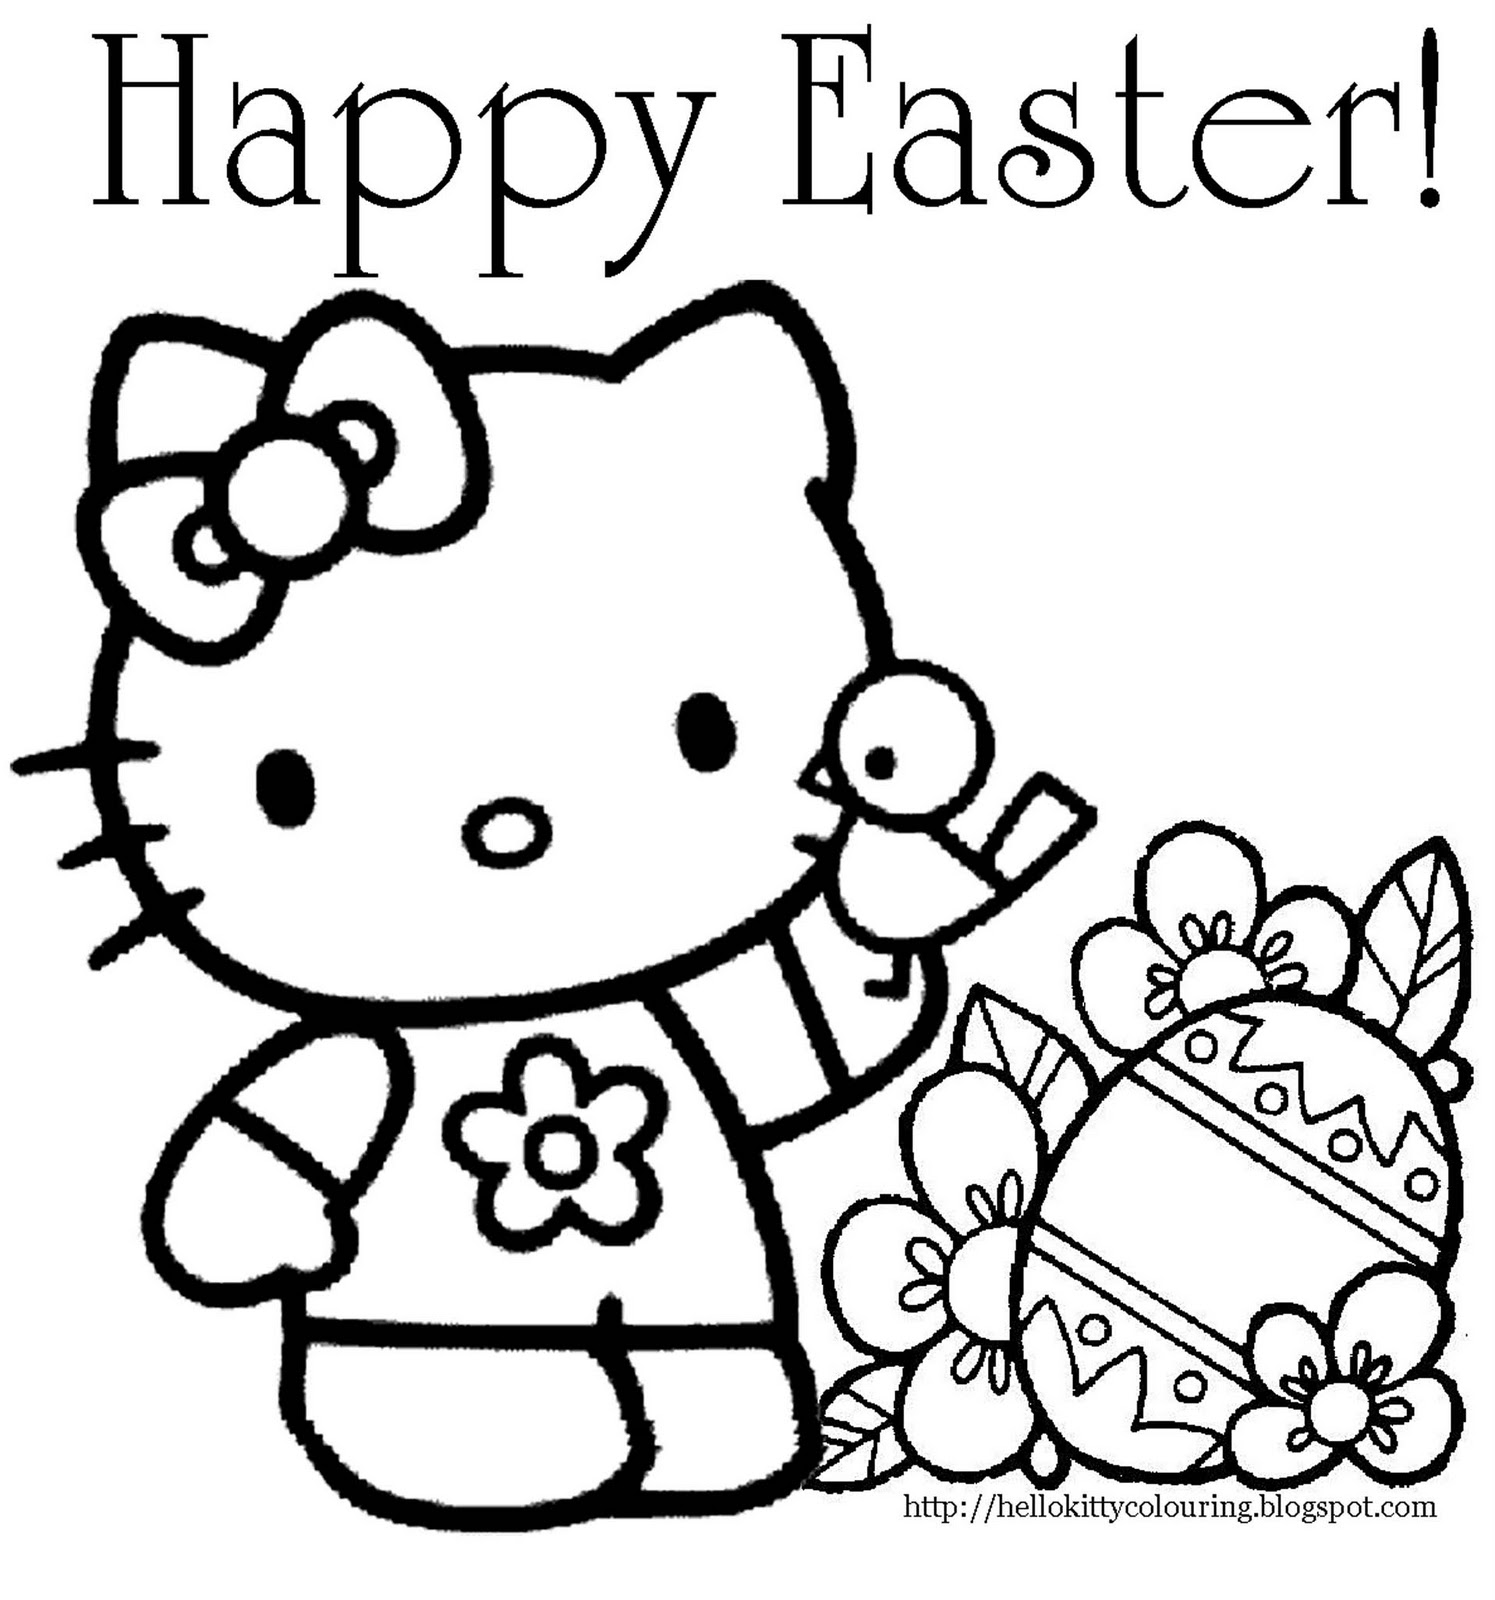 free easter coloring pages easter colouring miscellaneous easter colouring pages free coloring pages easter